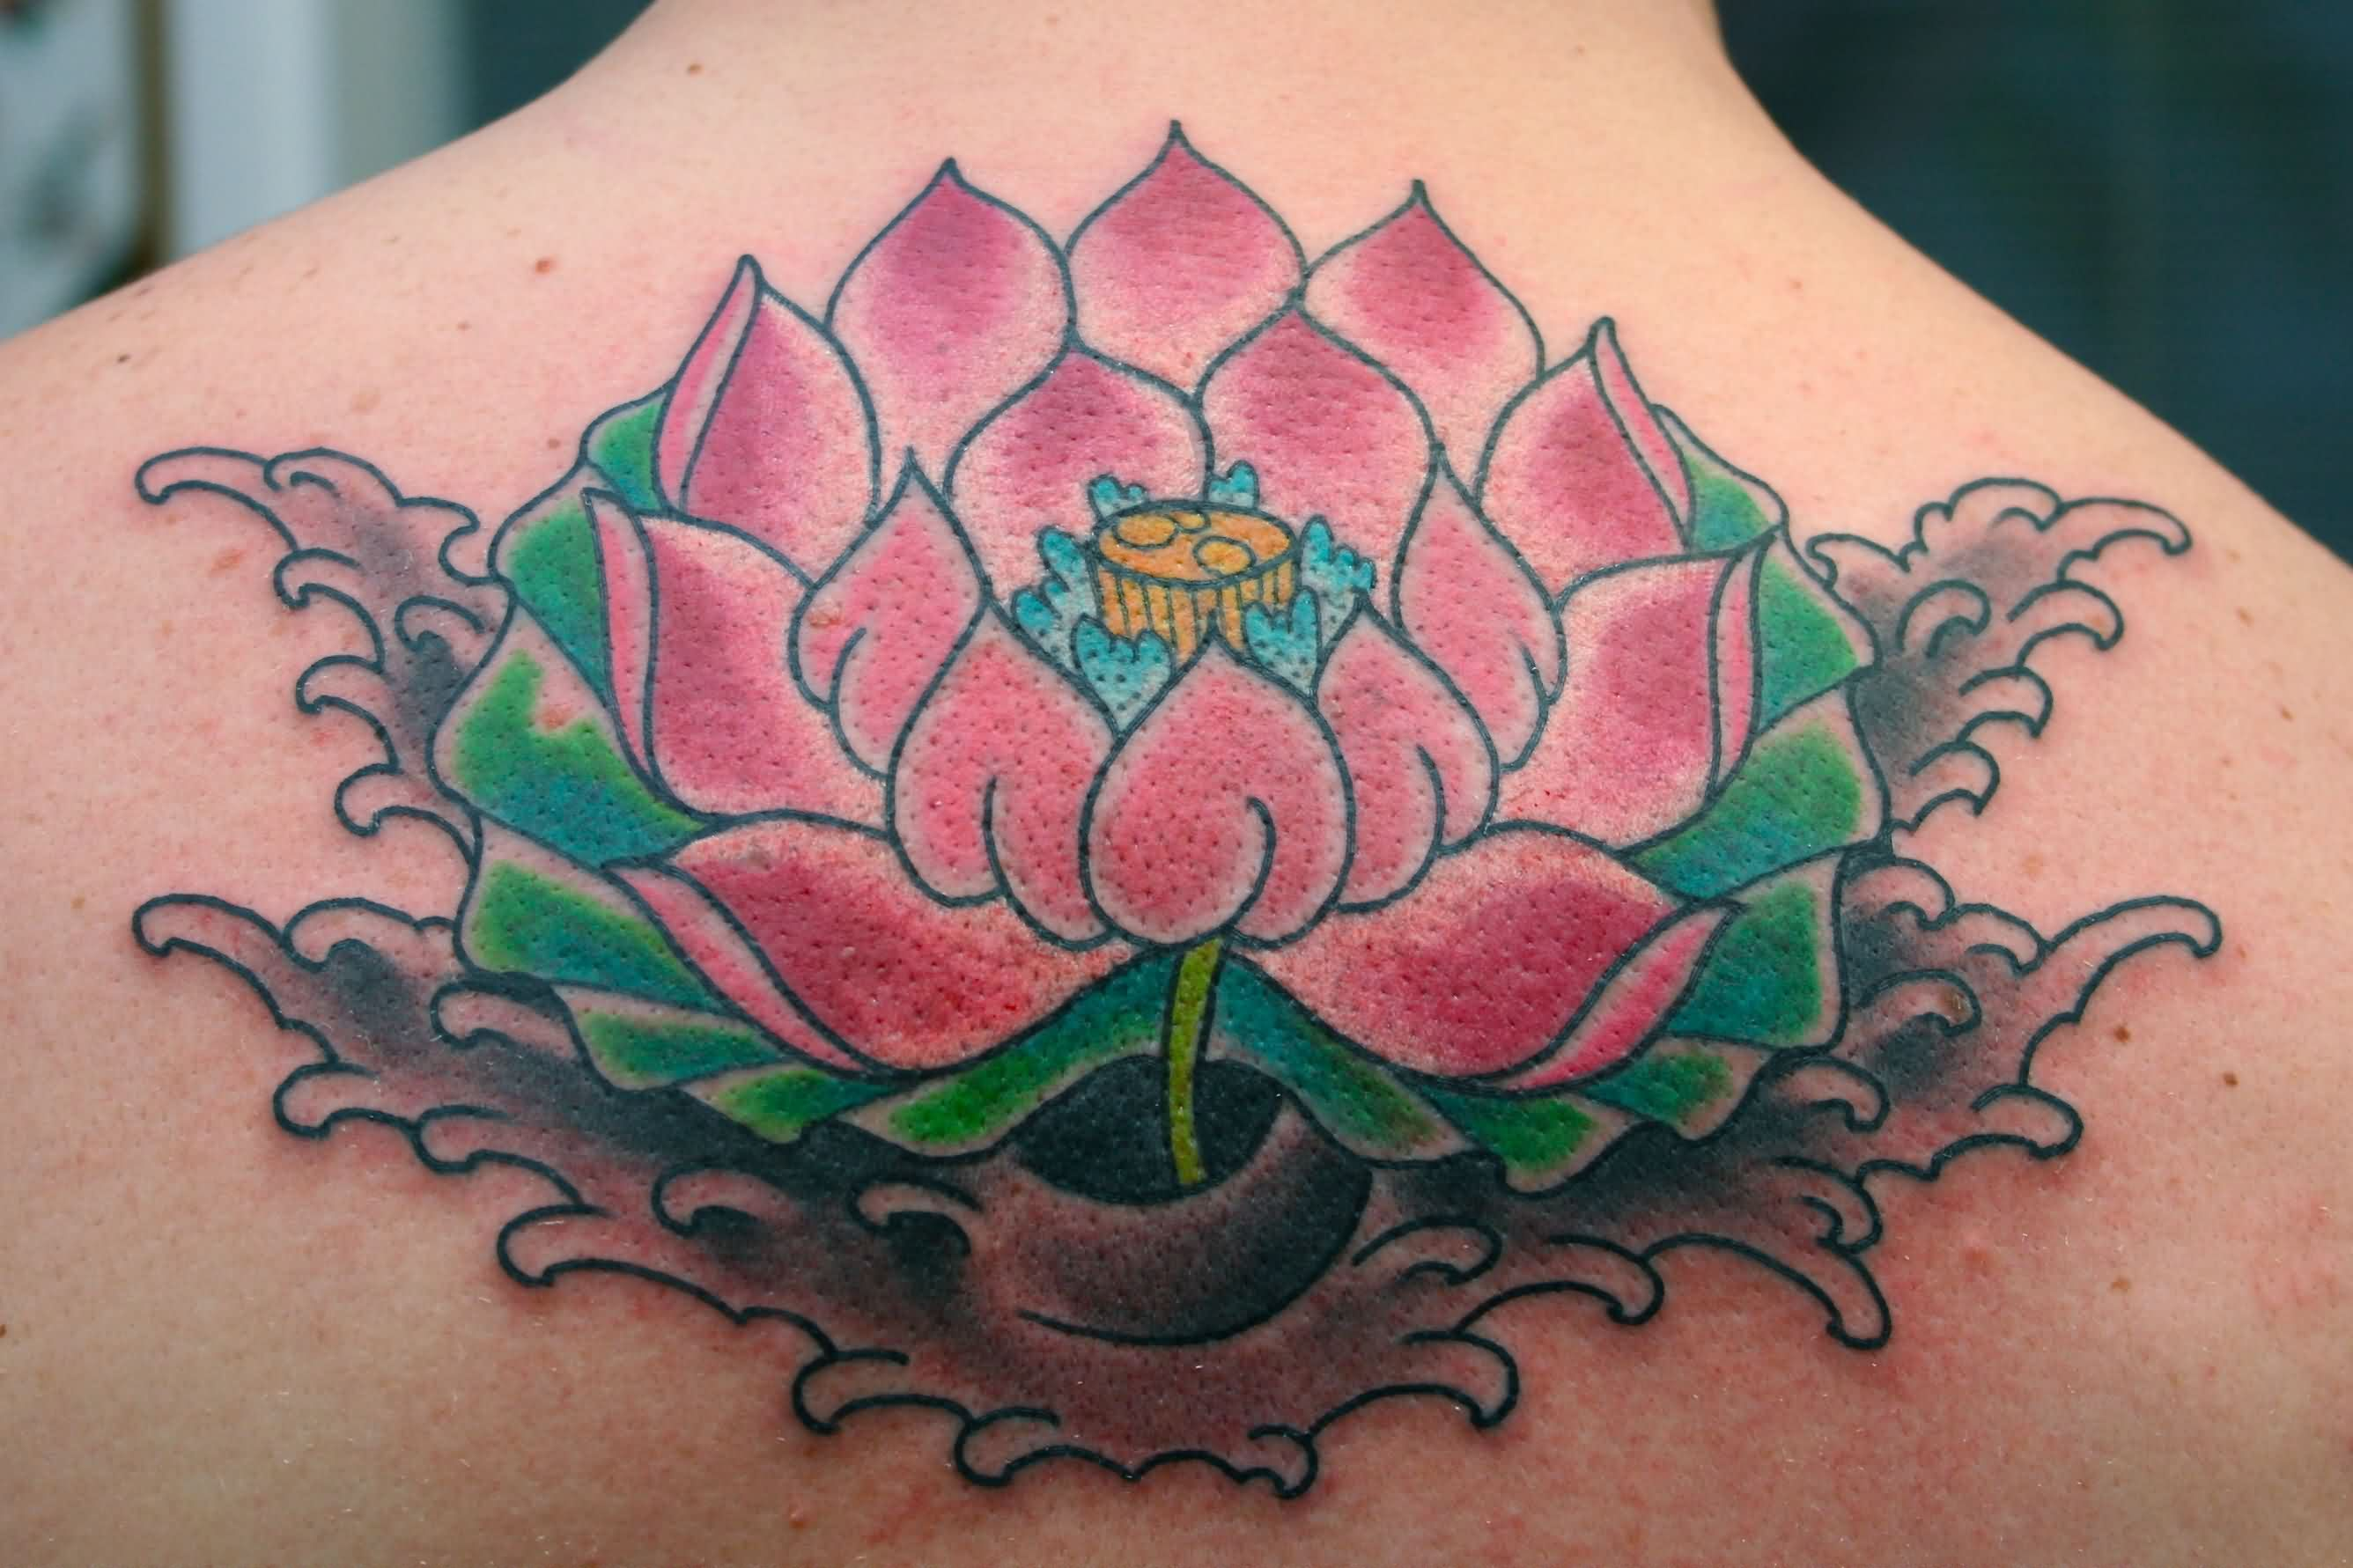 Pin by ny tattoo on arts hoabng pinterest explore lotus flower meaning lotus flowers and more izmirmasajfo Image collections